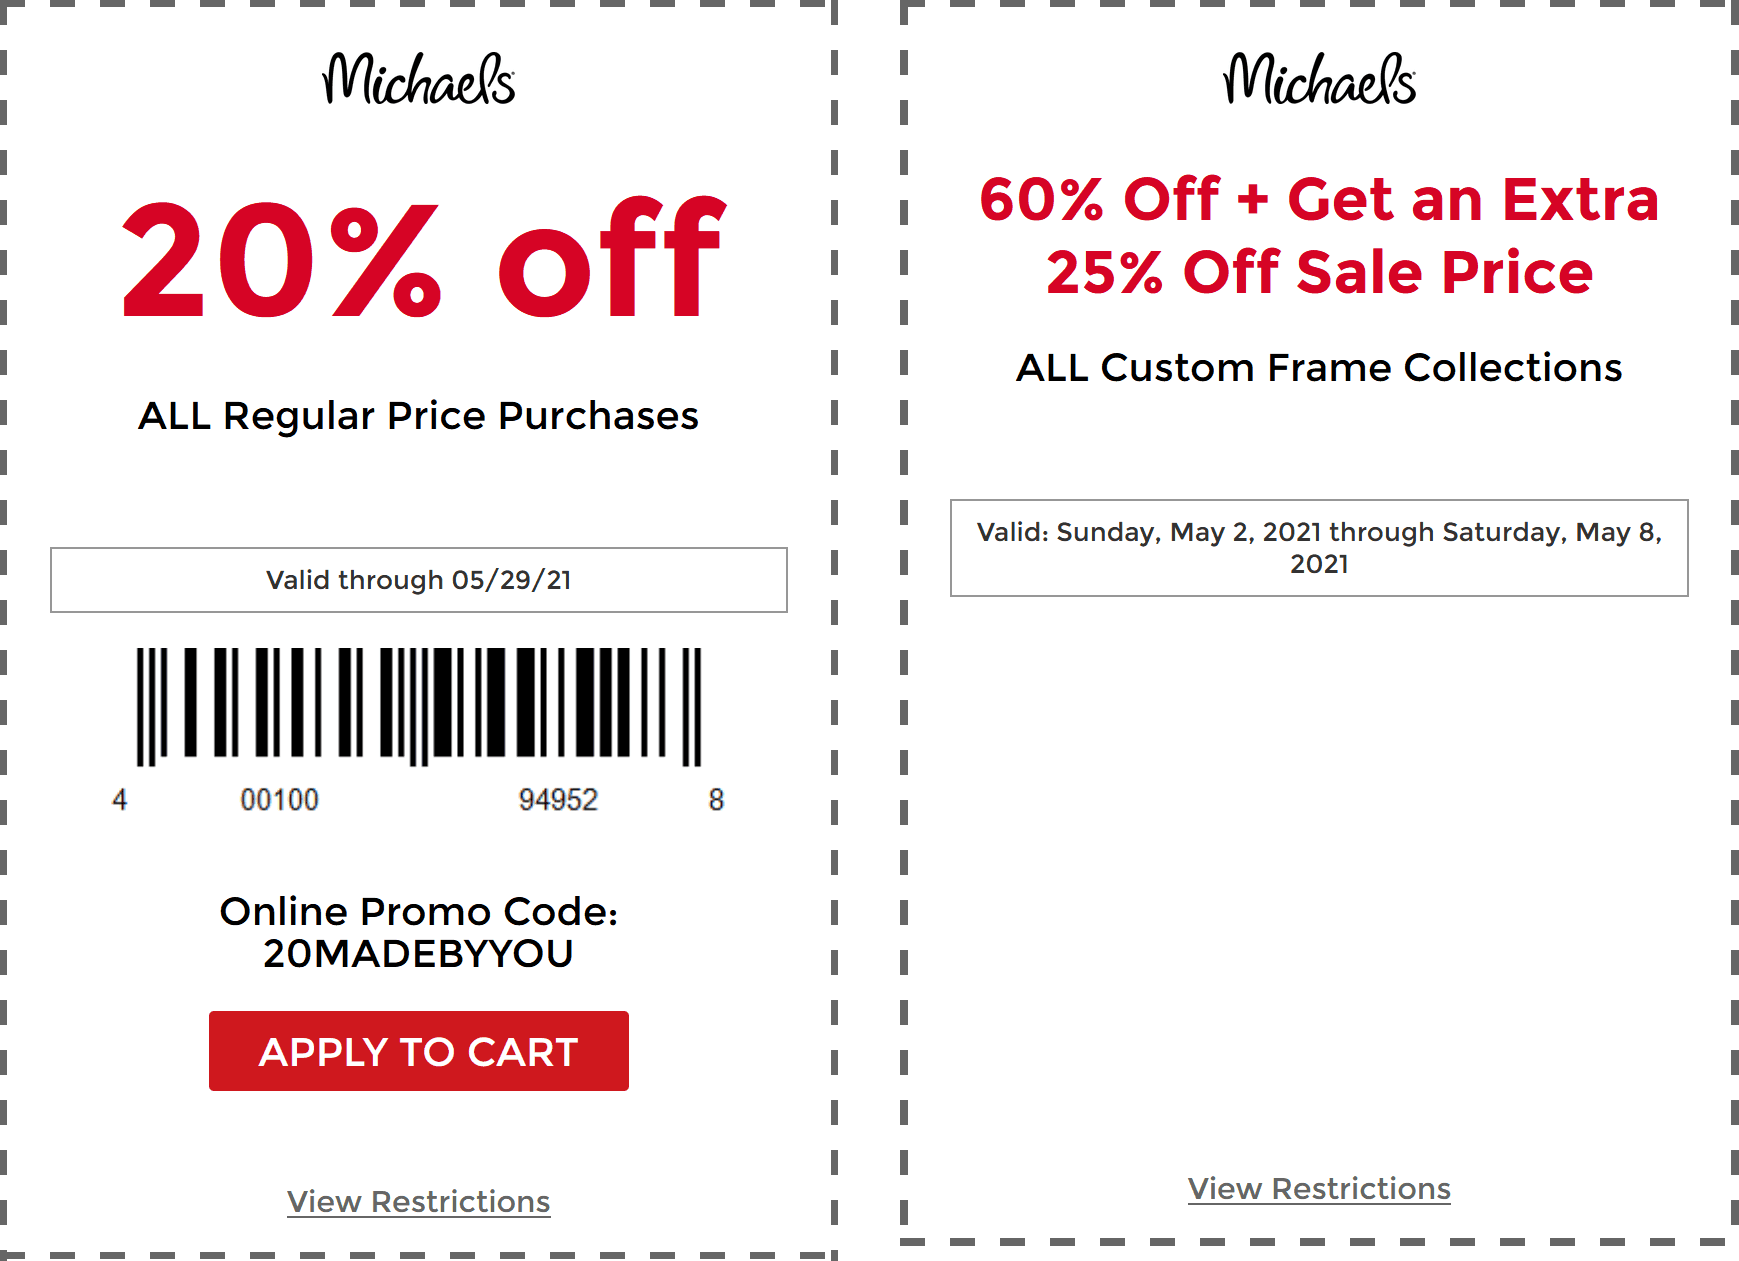 Michaels coupons & promo code for [July 2021]